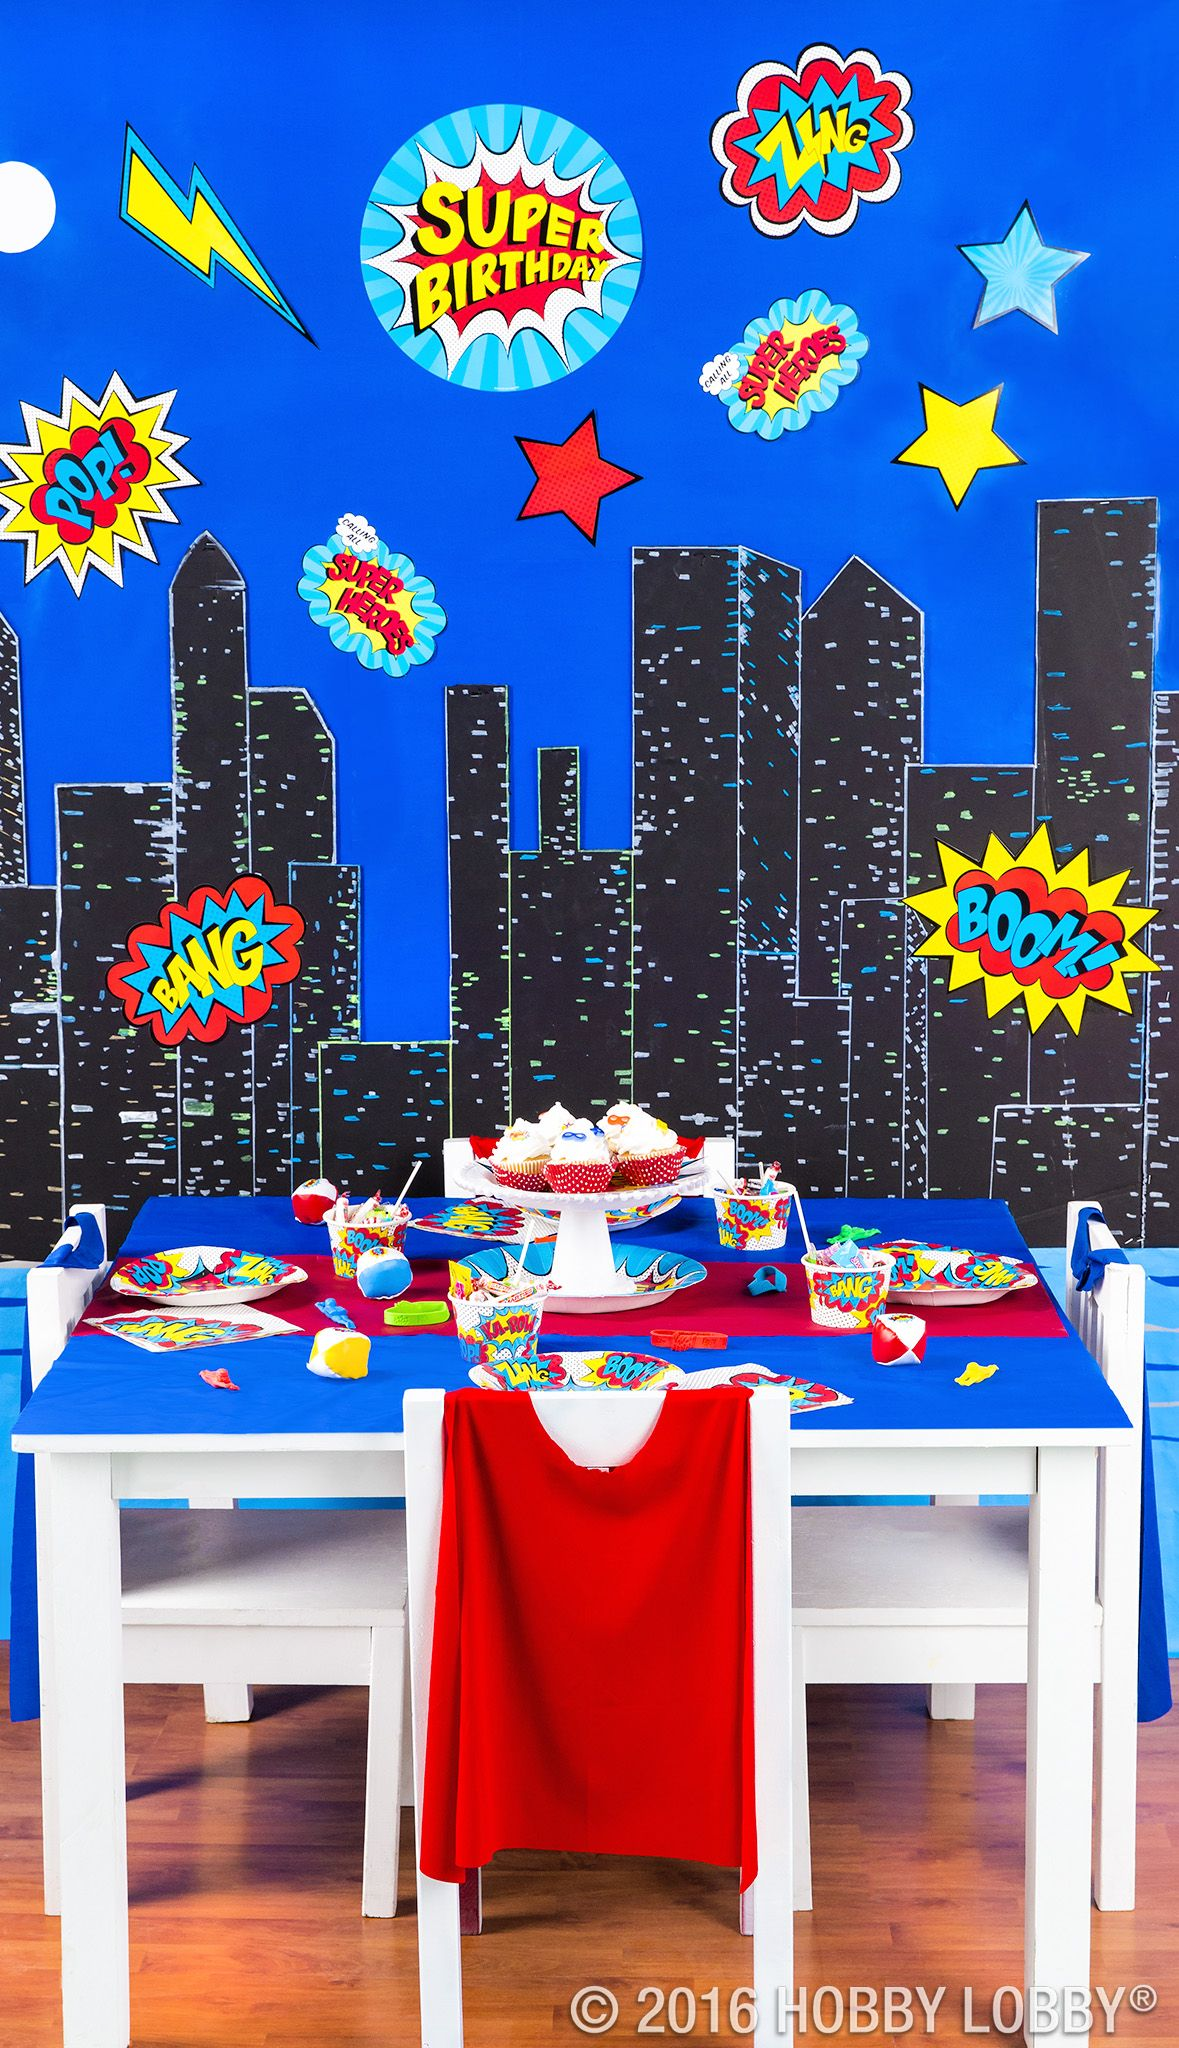 Boom Pow Save The World With Your Superhero Themed Party Decor Superhero Decorations Superhero Theme Party Superhero Birthday Party